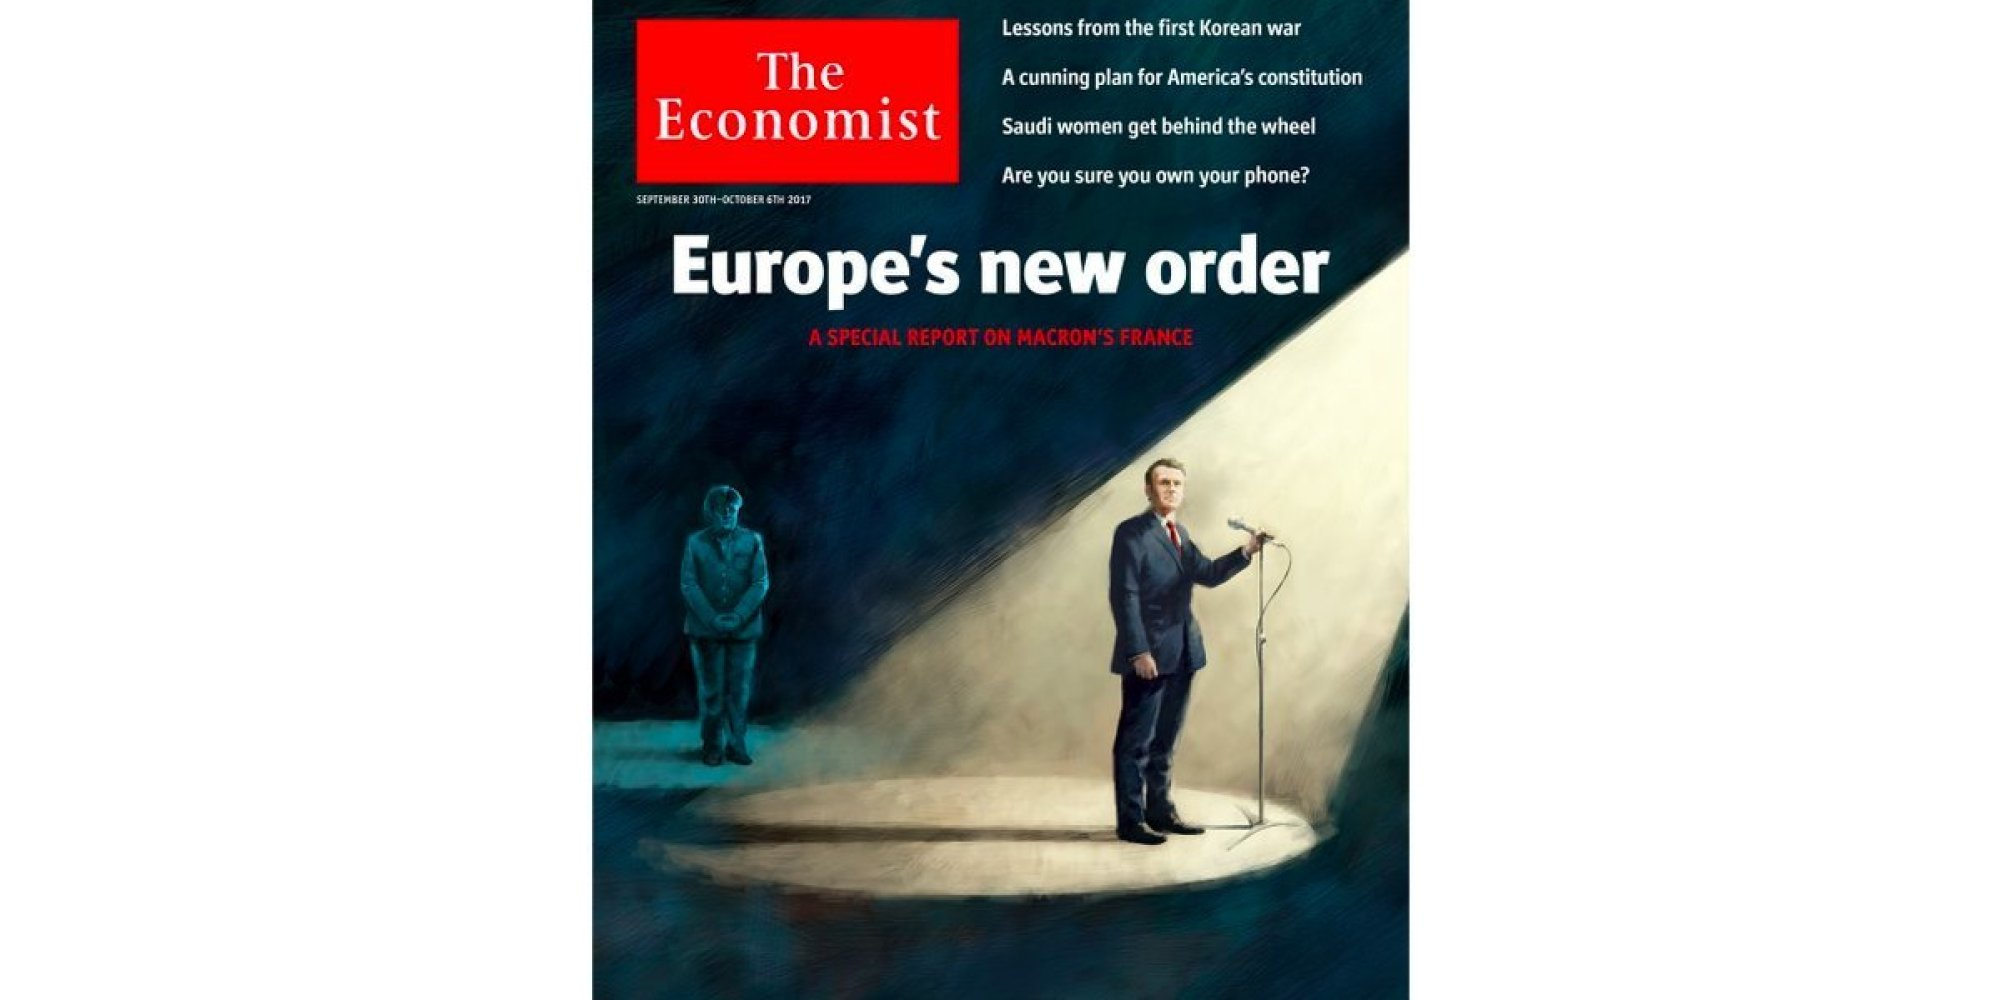 Europe's new order